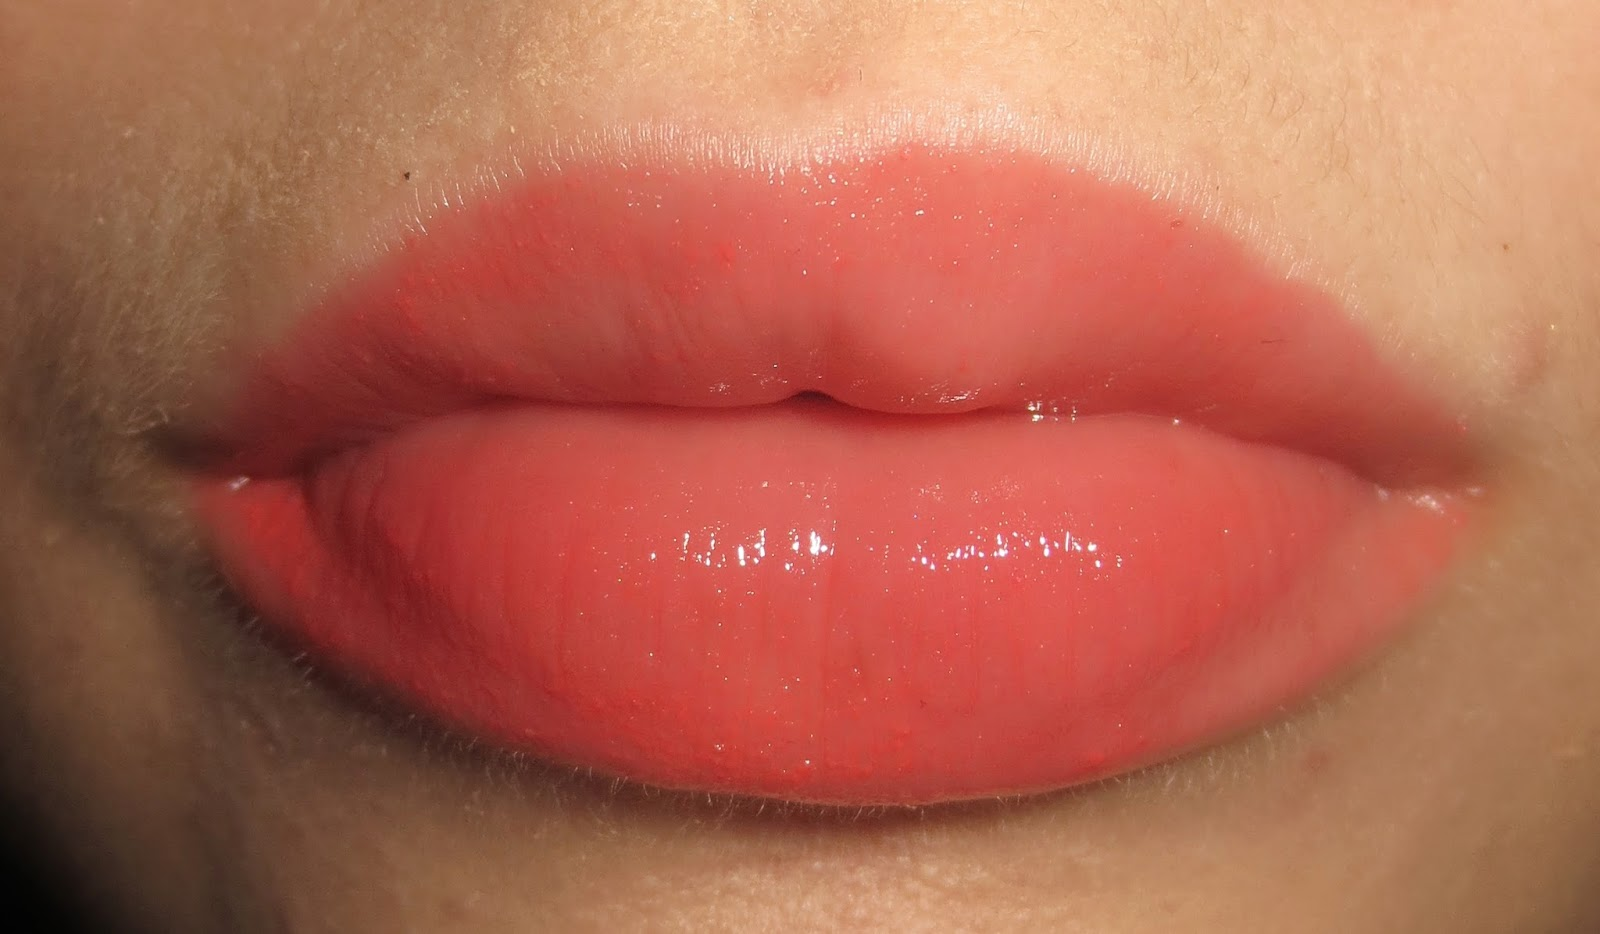 Lise Watier Hydra Kiss Colour Balm in Coral Paradise on Lips